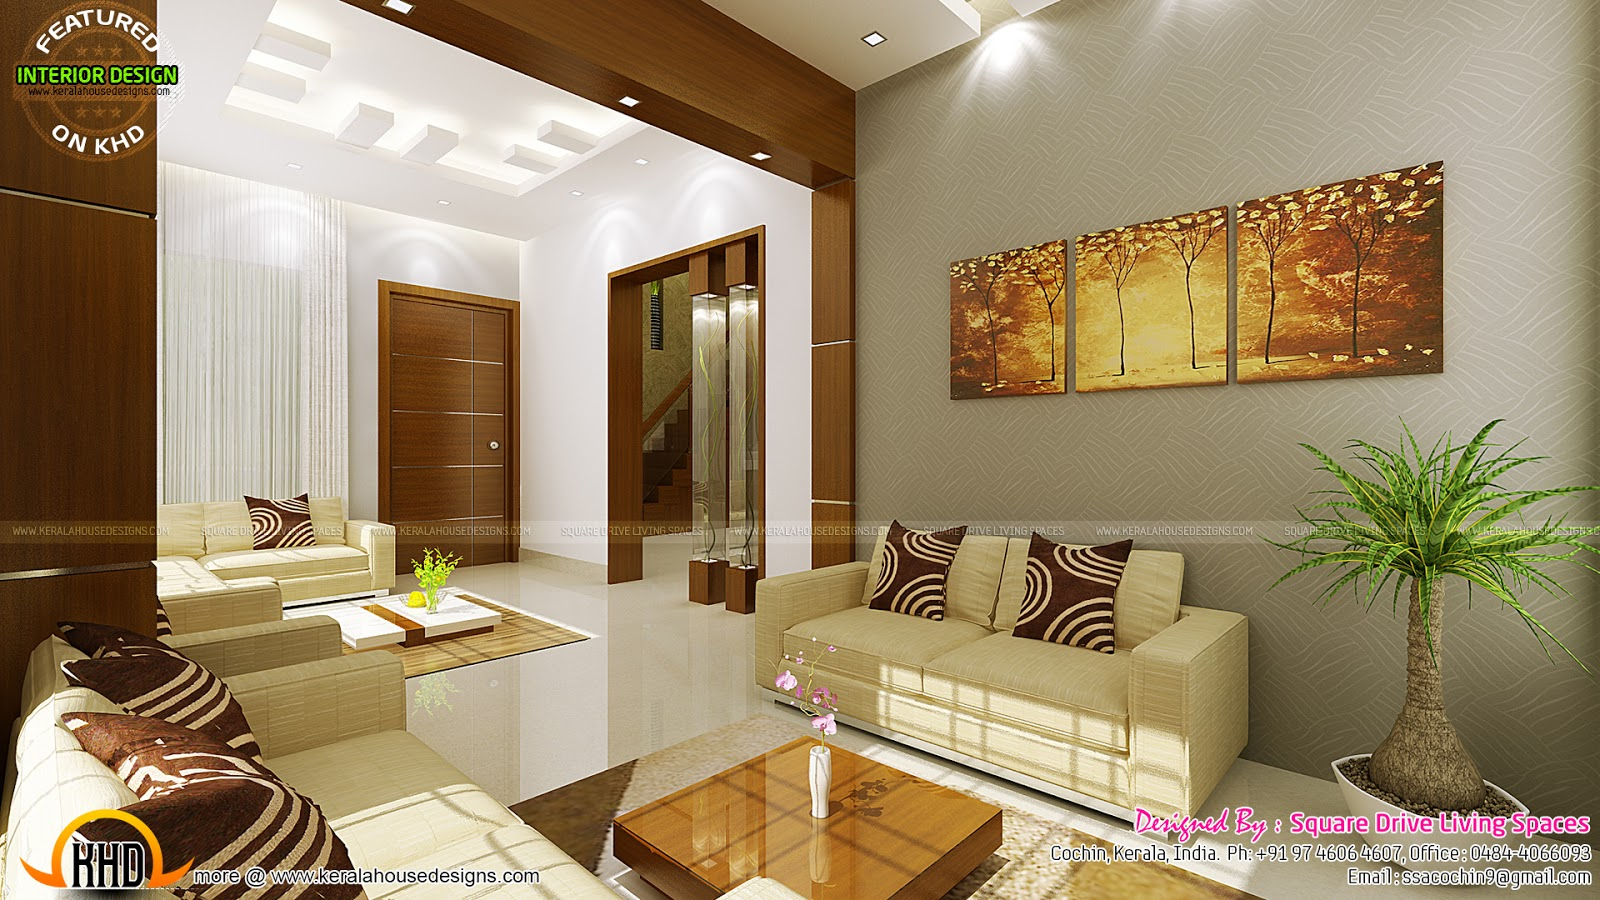 Contemporary kitchen dining and living room kerala home design and floor plans Interior design ideas for selling houses